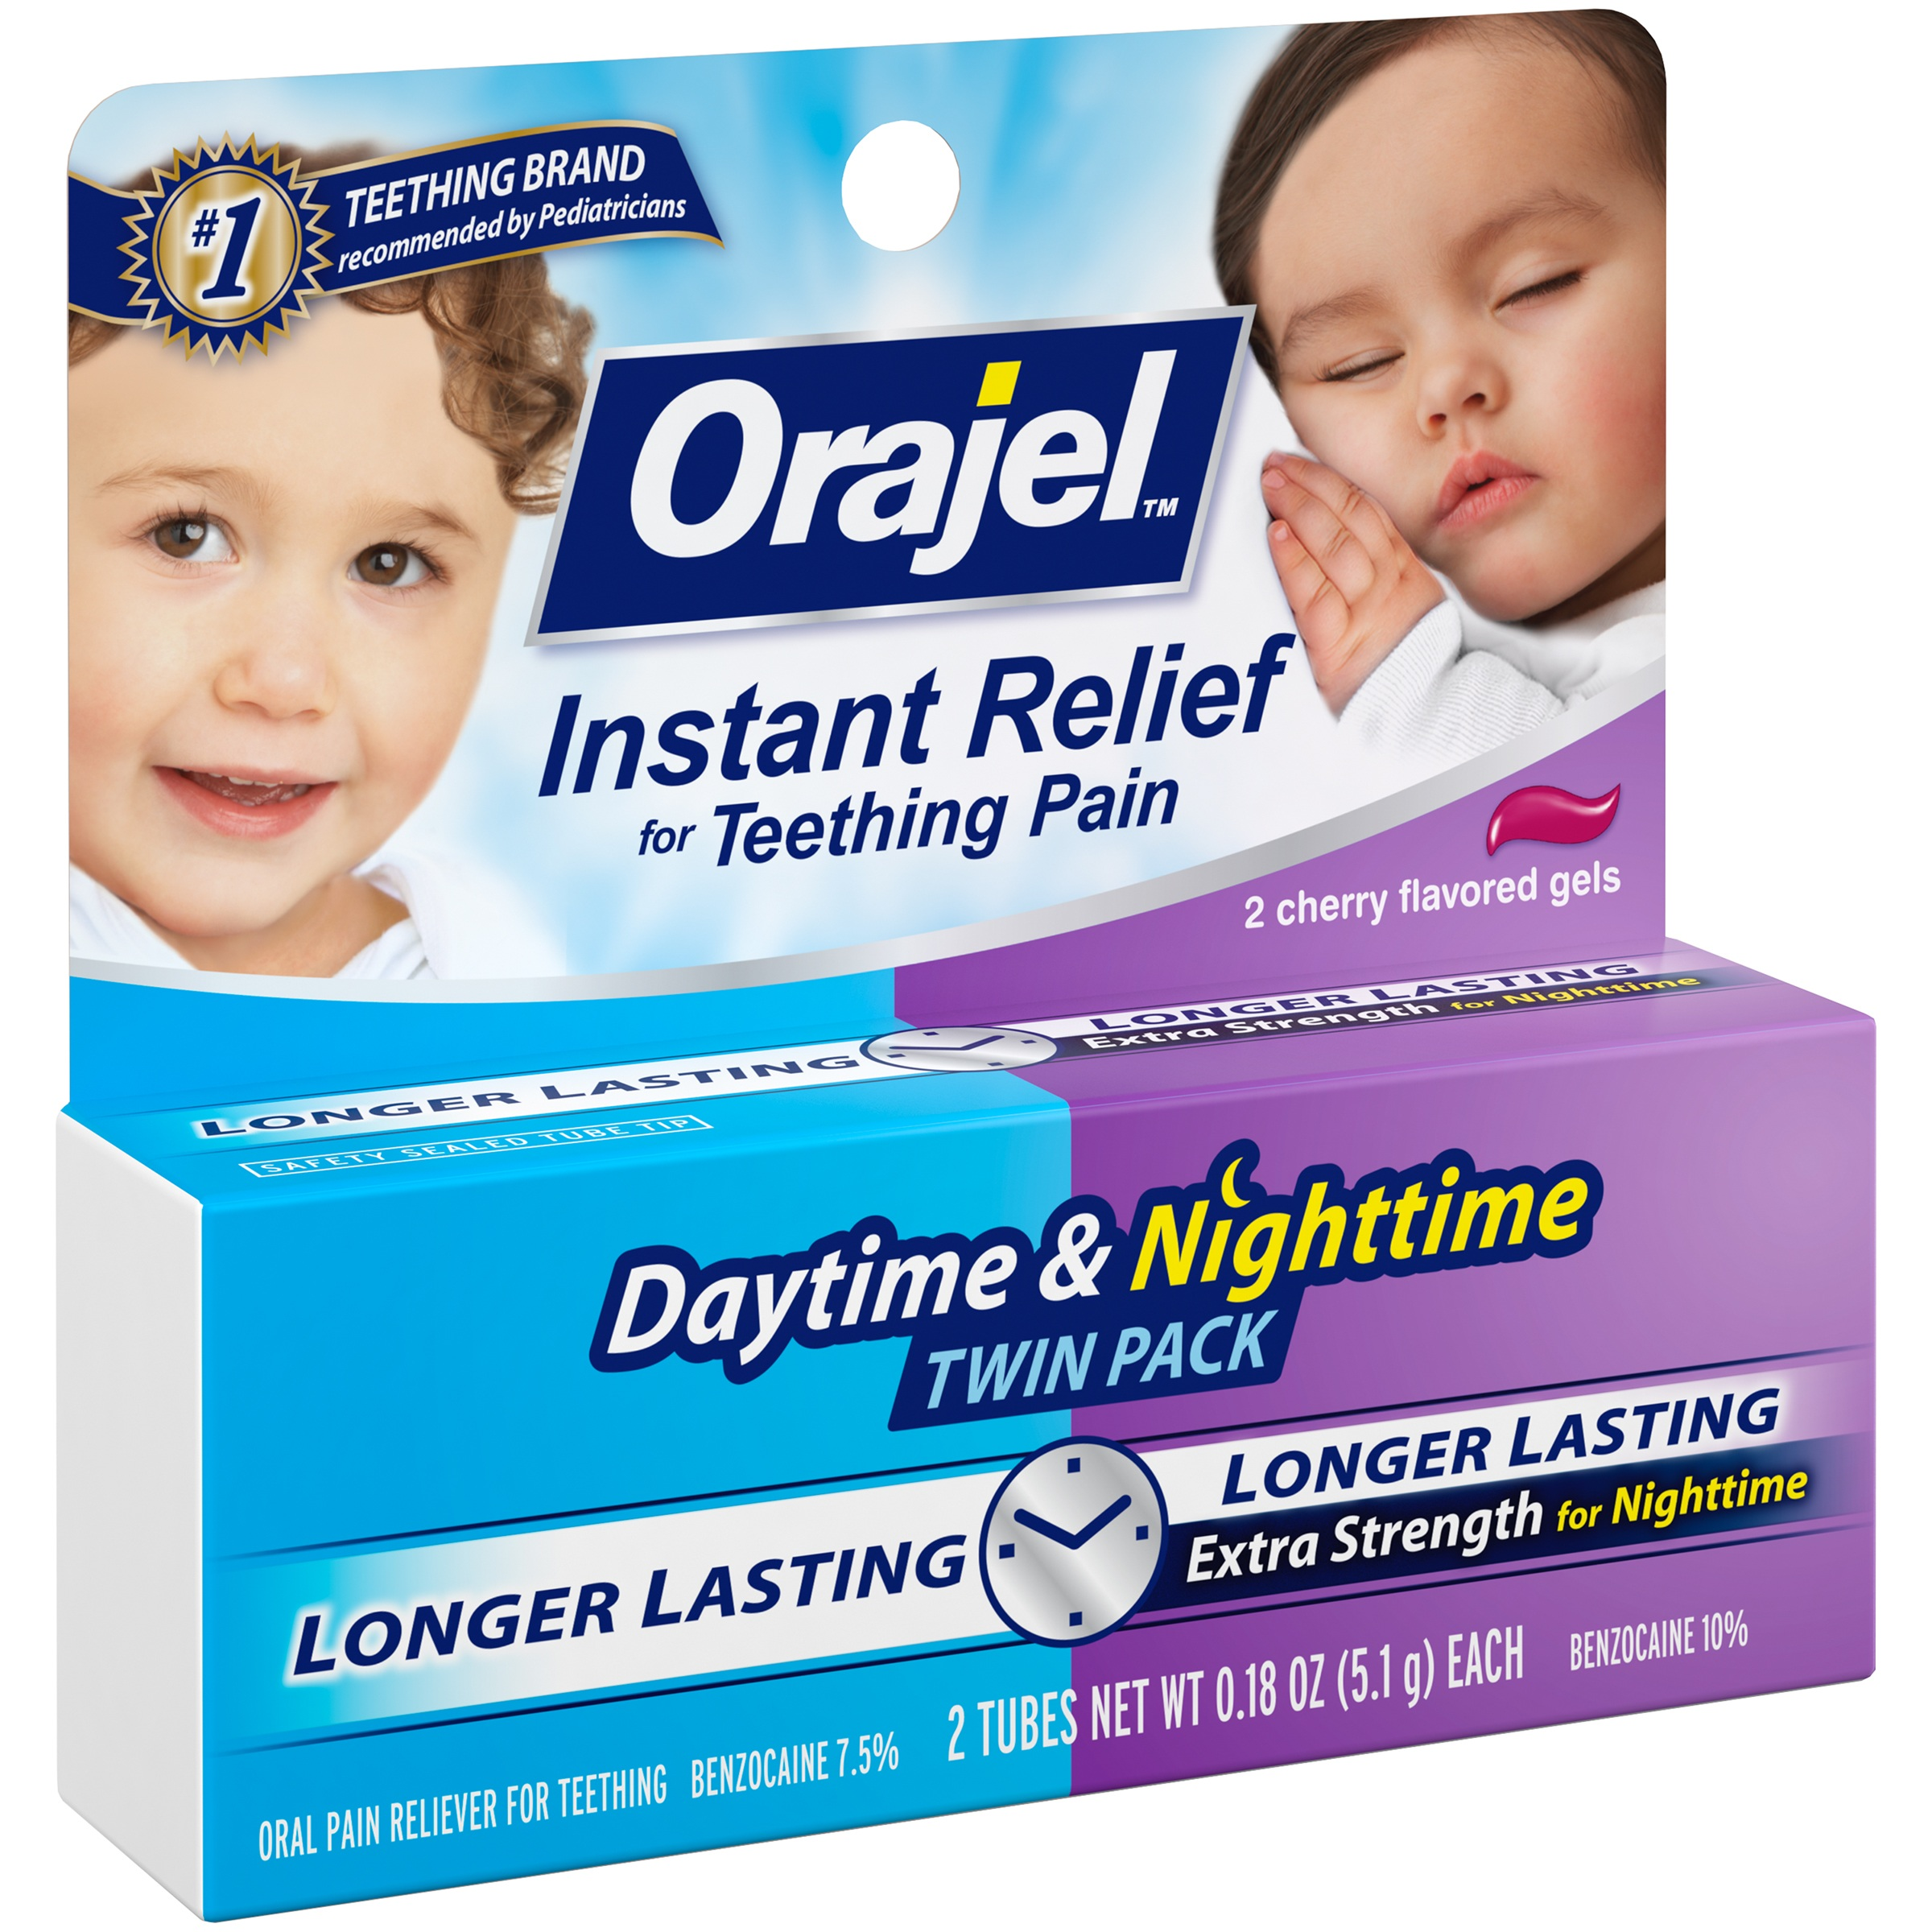 Orajel��� Instant Relief for Teething Pain Daytime & Nighttime Twin Pack Cherry Flavored Gels Oral Pain Reliever